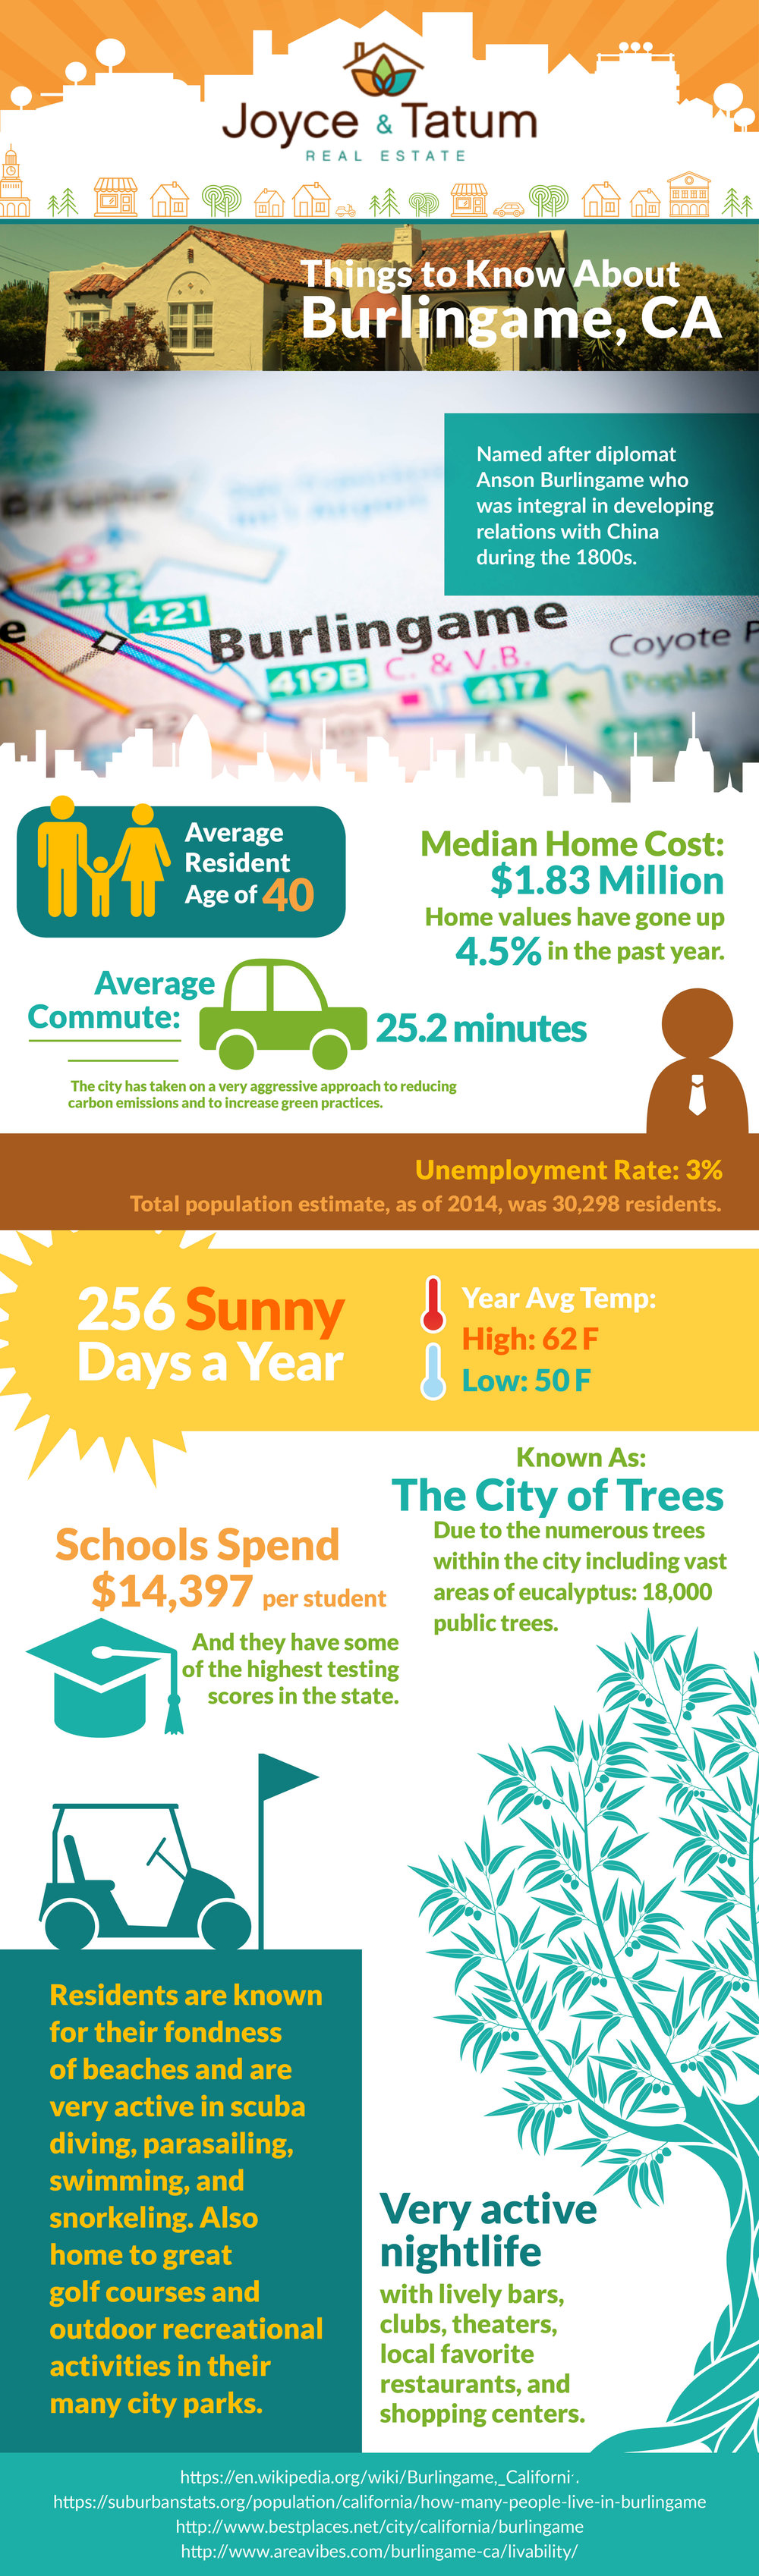 An infographic with facts about the town of Burlingame, CA